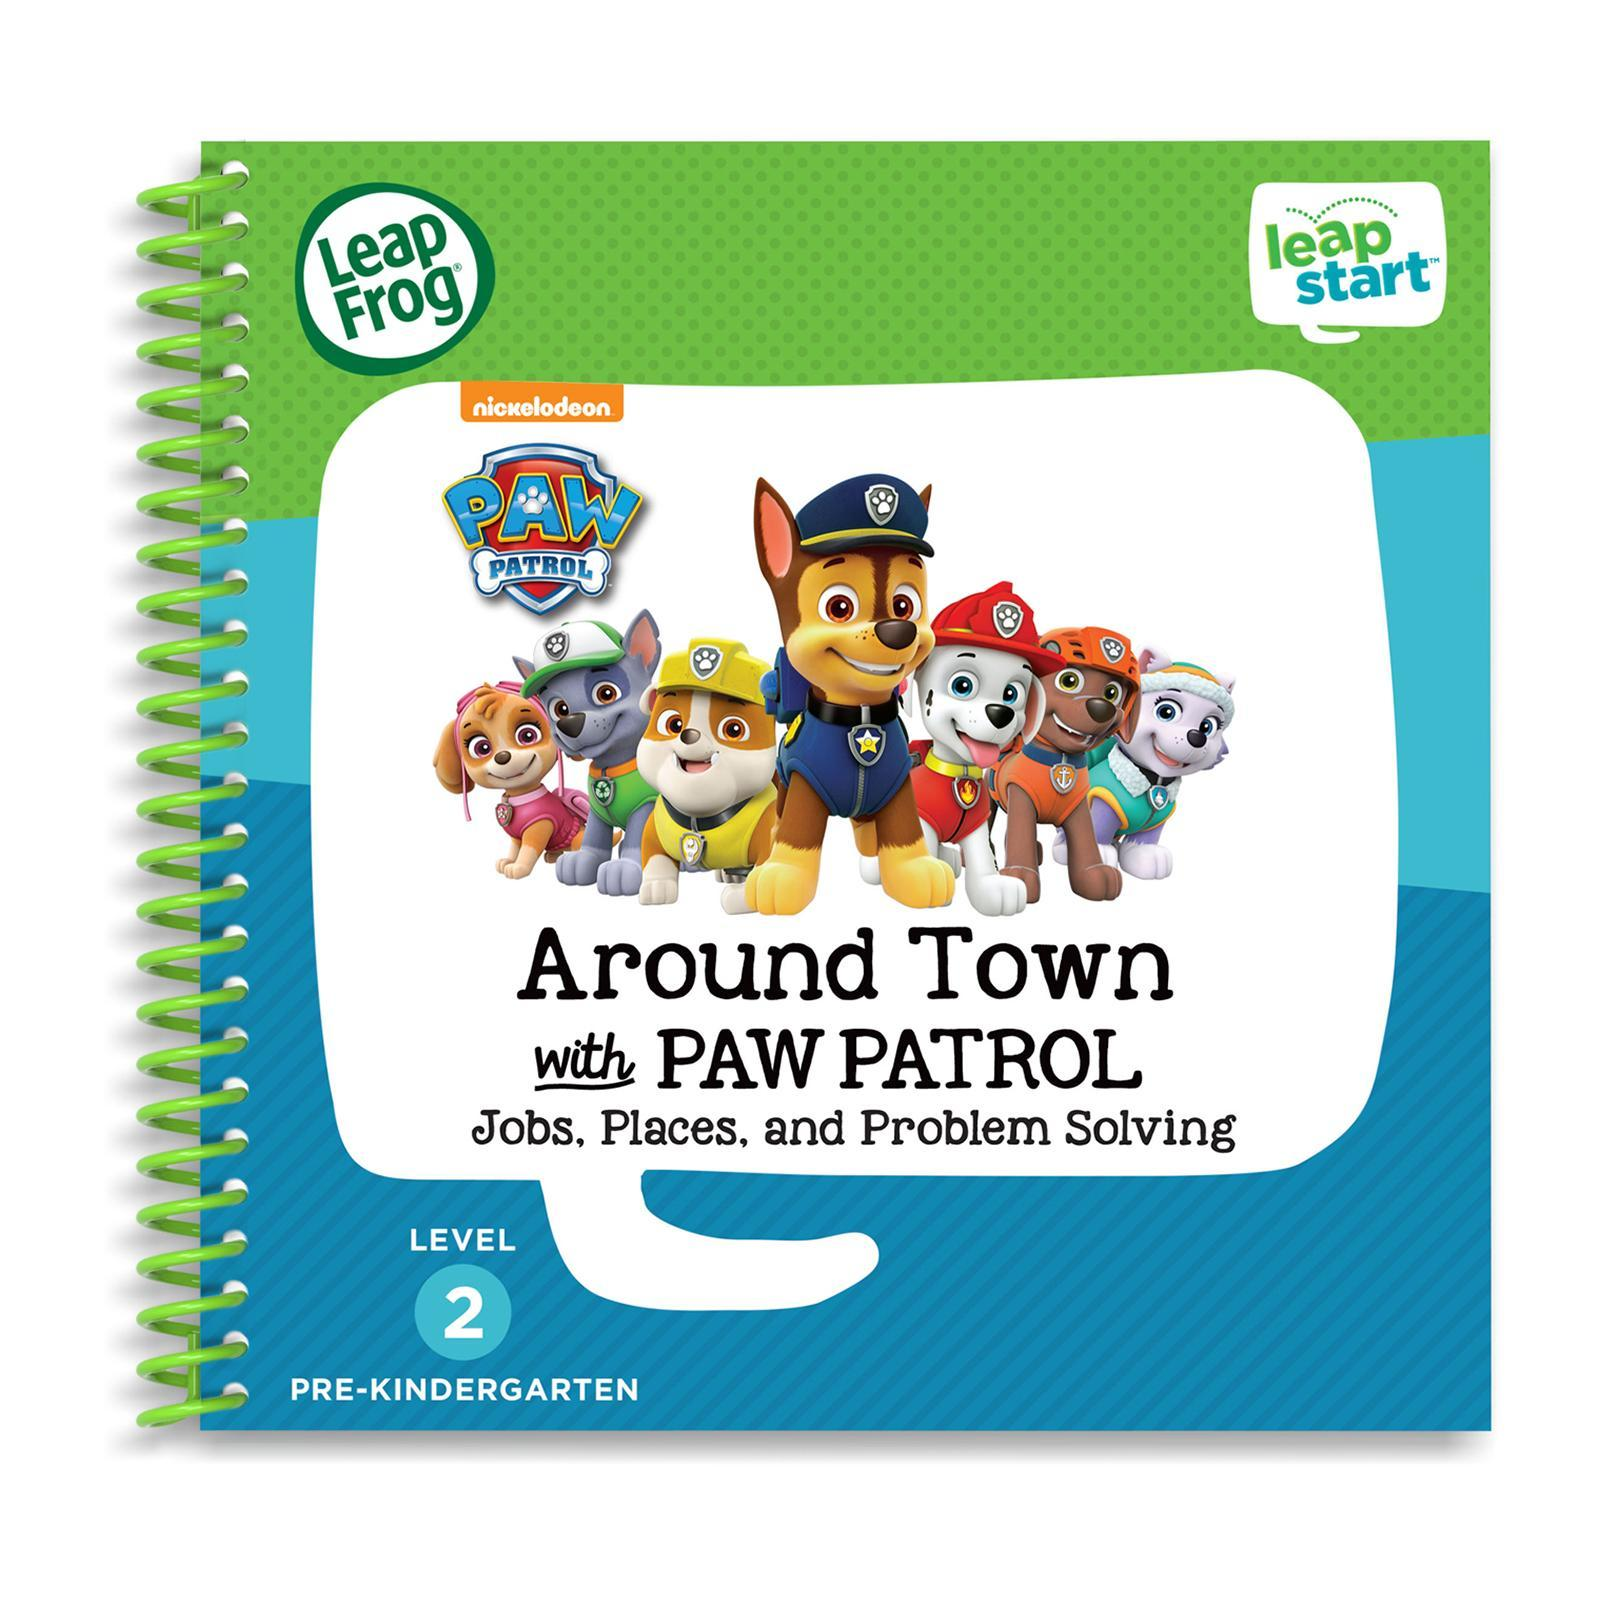 LeapFrog LeapStart Book - Paw Patrol Around Town With Paw Patrol